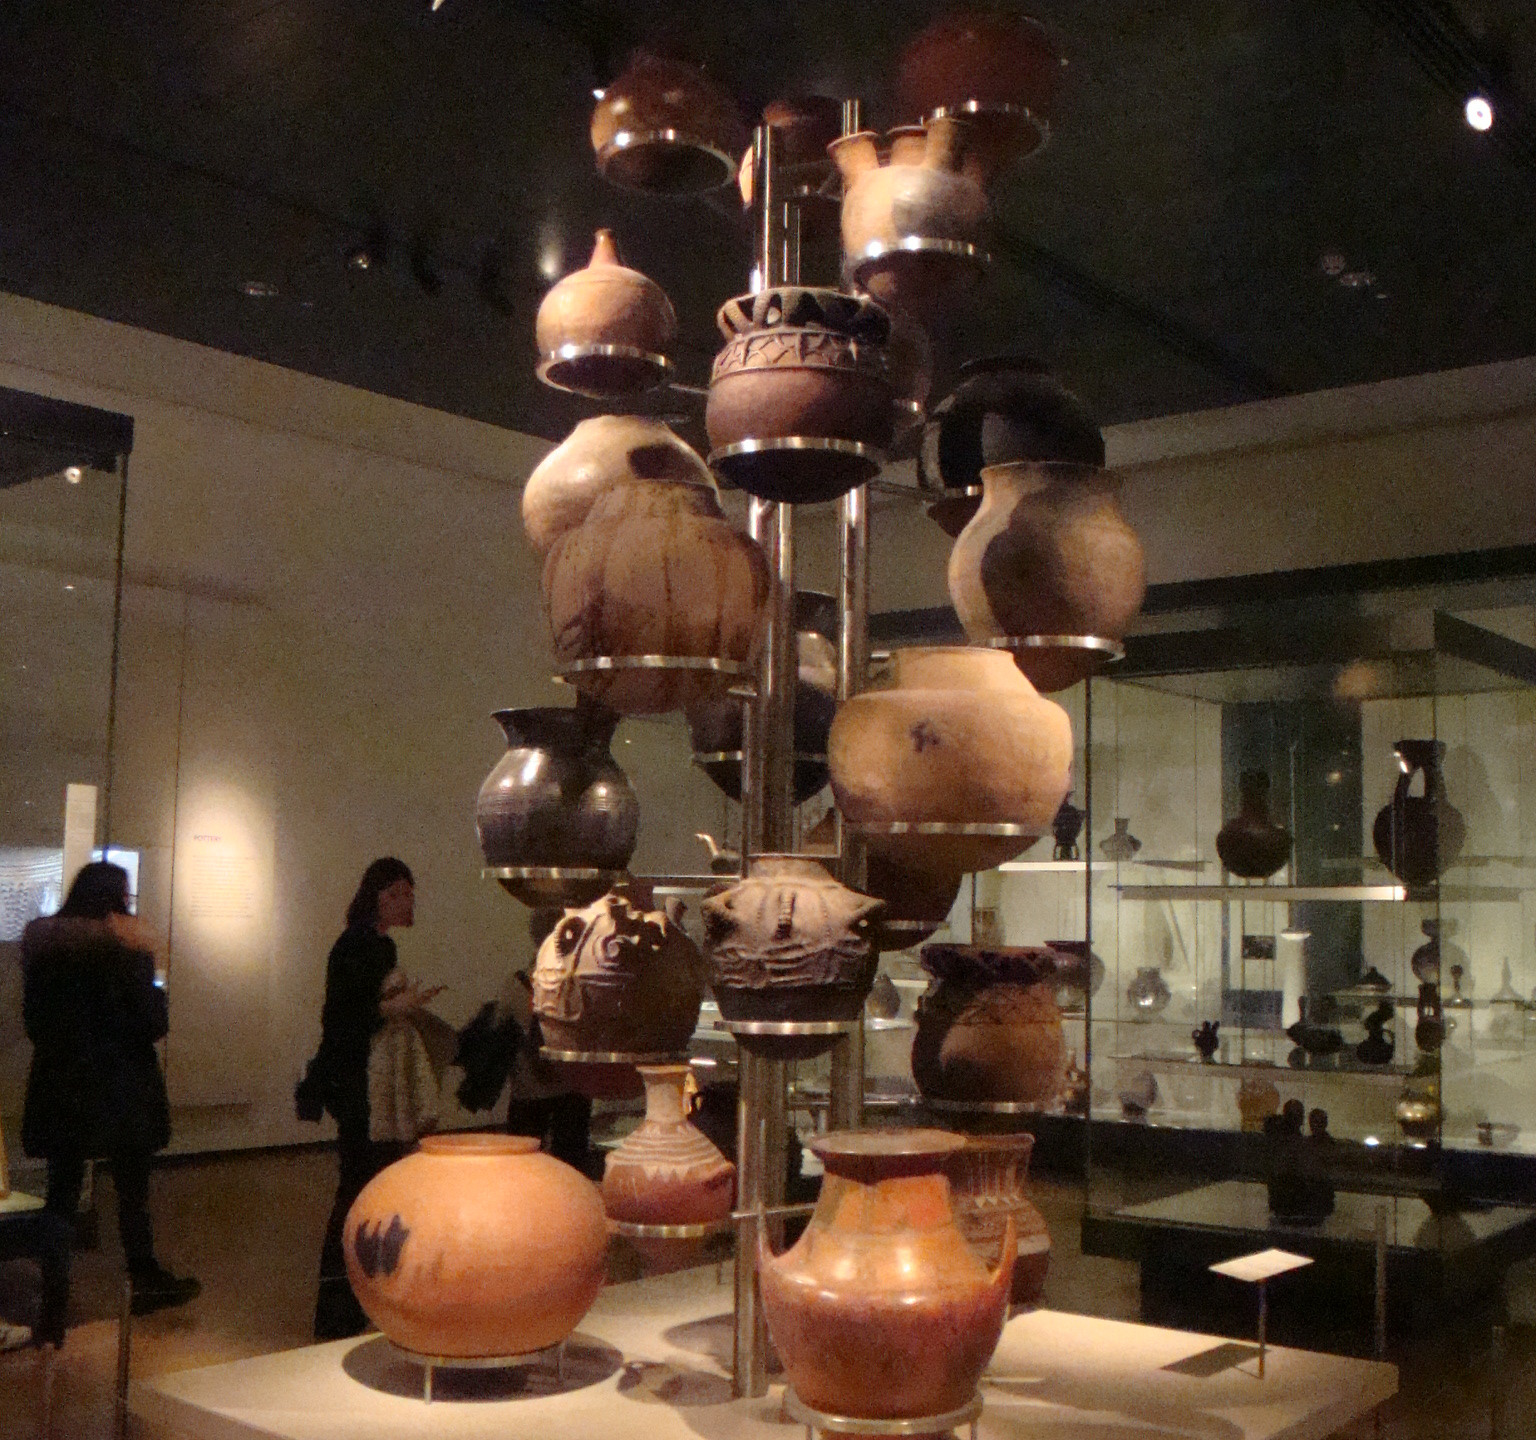 Display of Large Pots